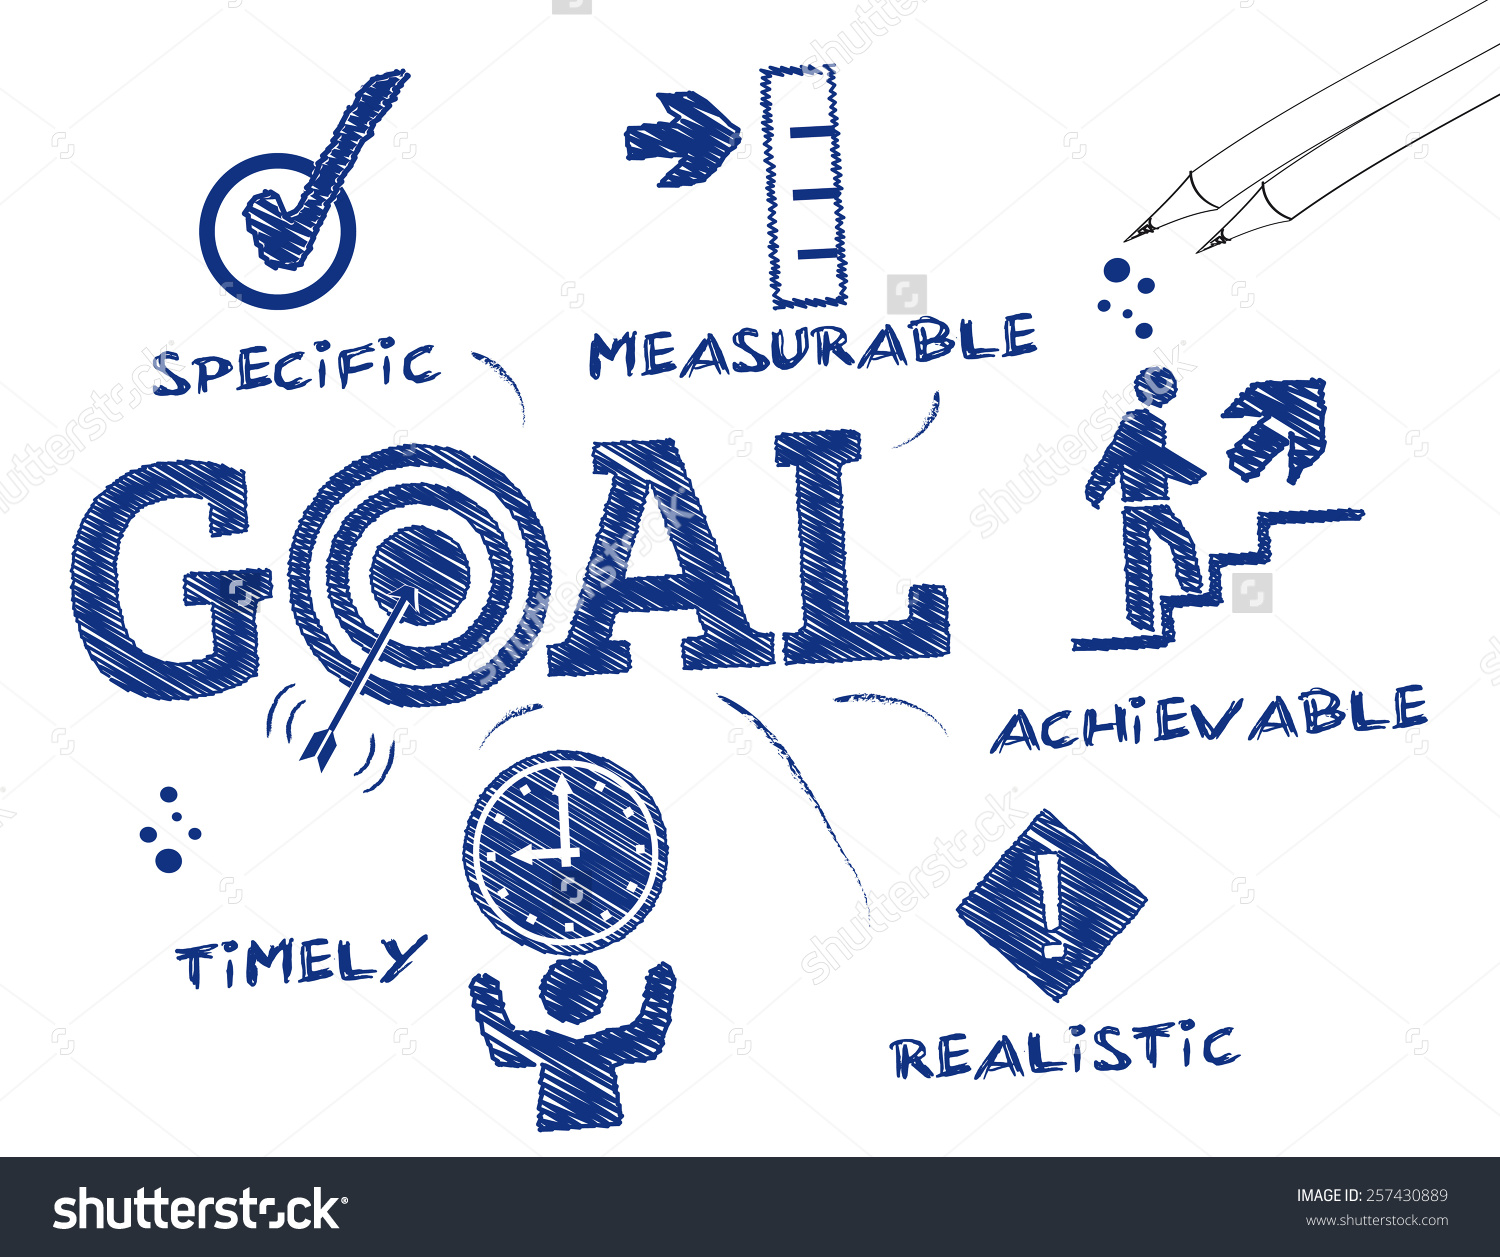 Goal setting clipart black and white.